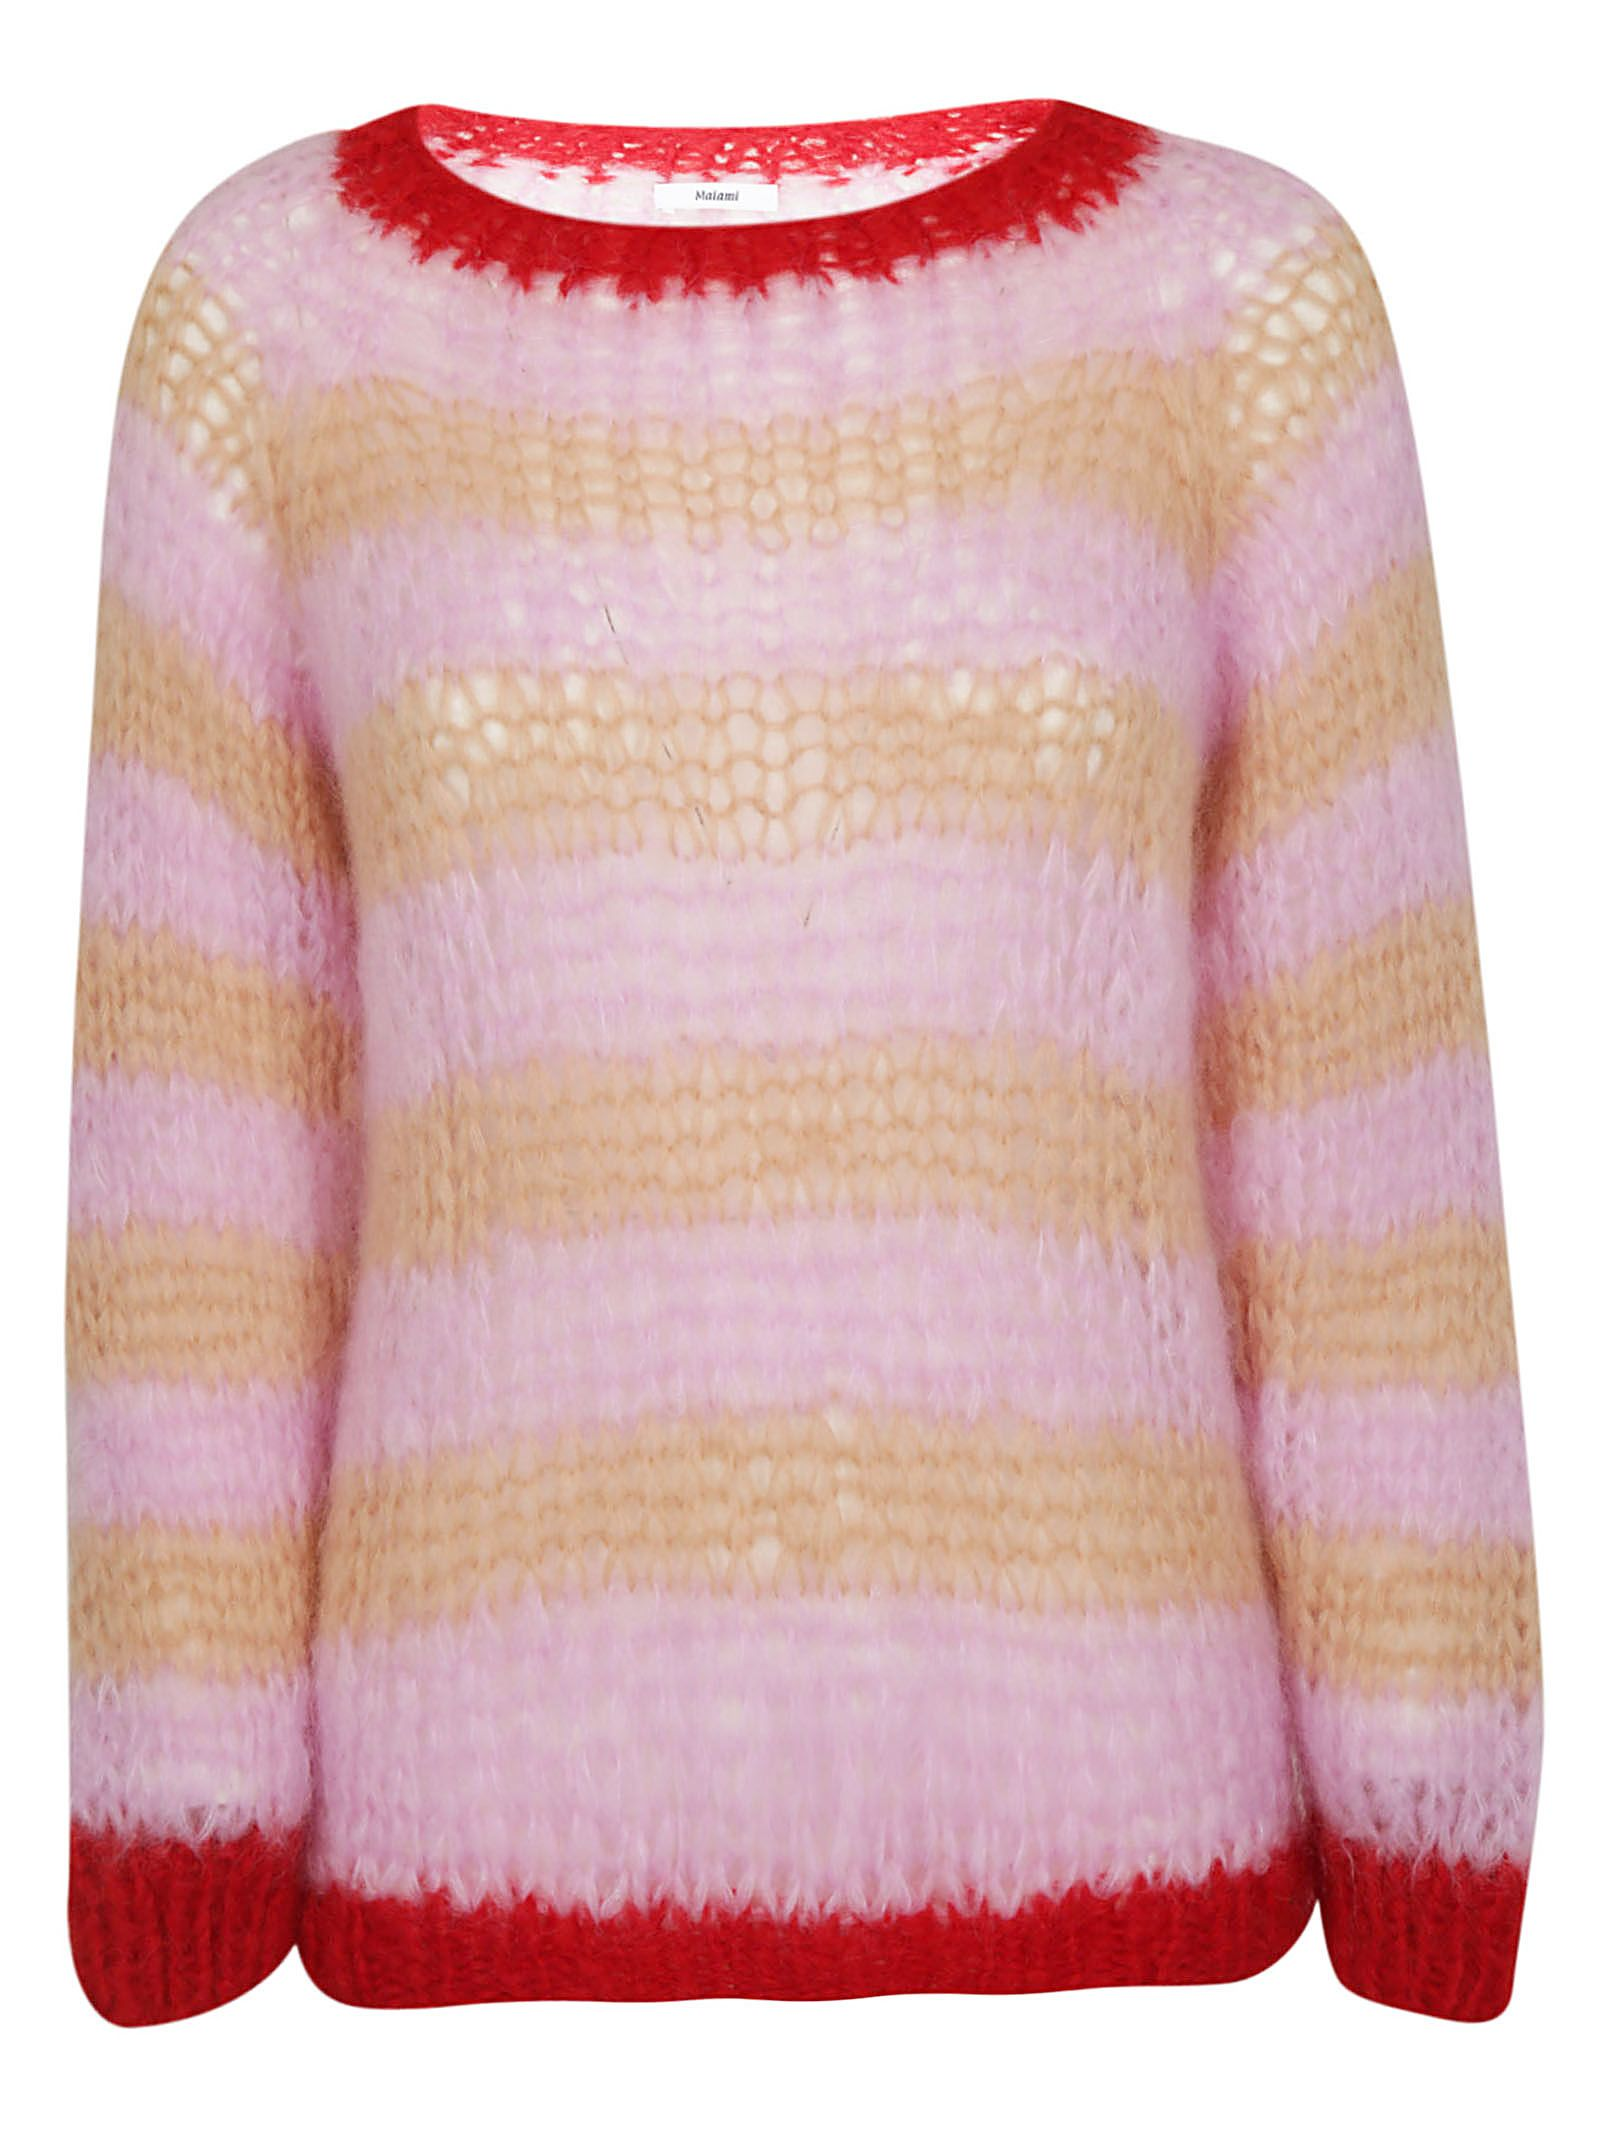 MAIAMI Maiami Knitted Sweater in Rosso/Rosa/Caramel